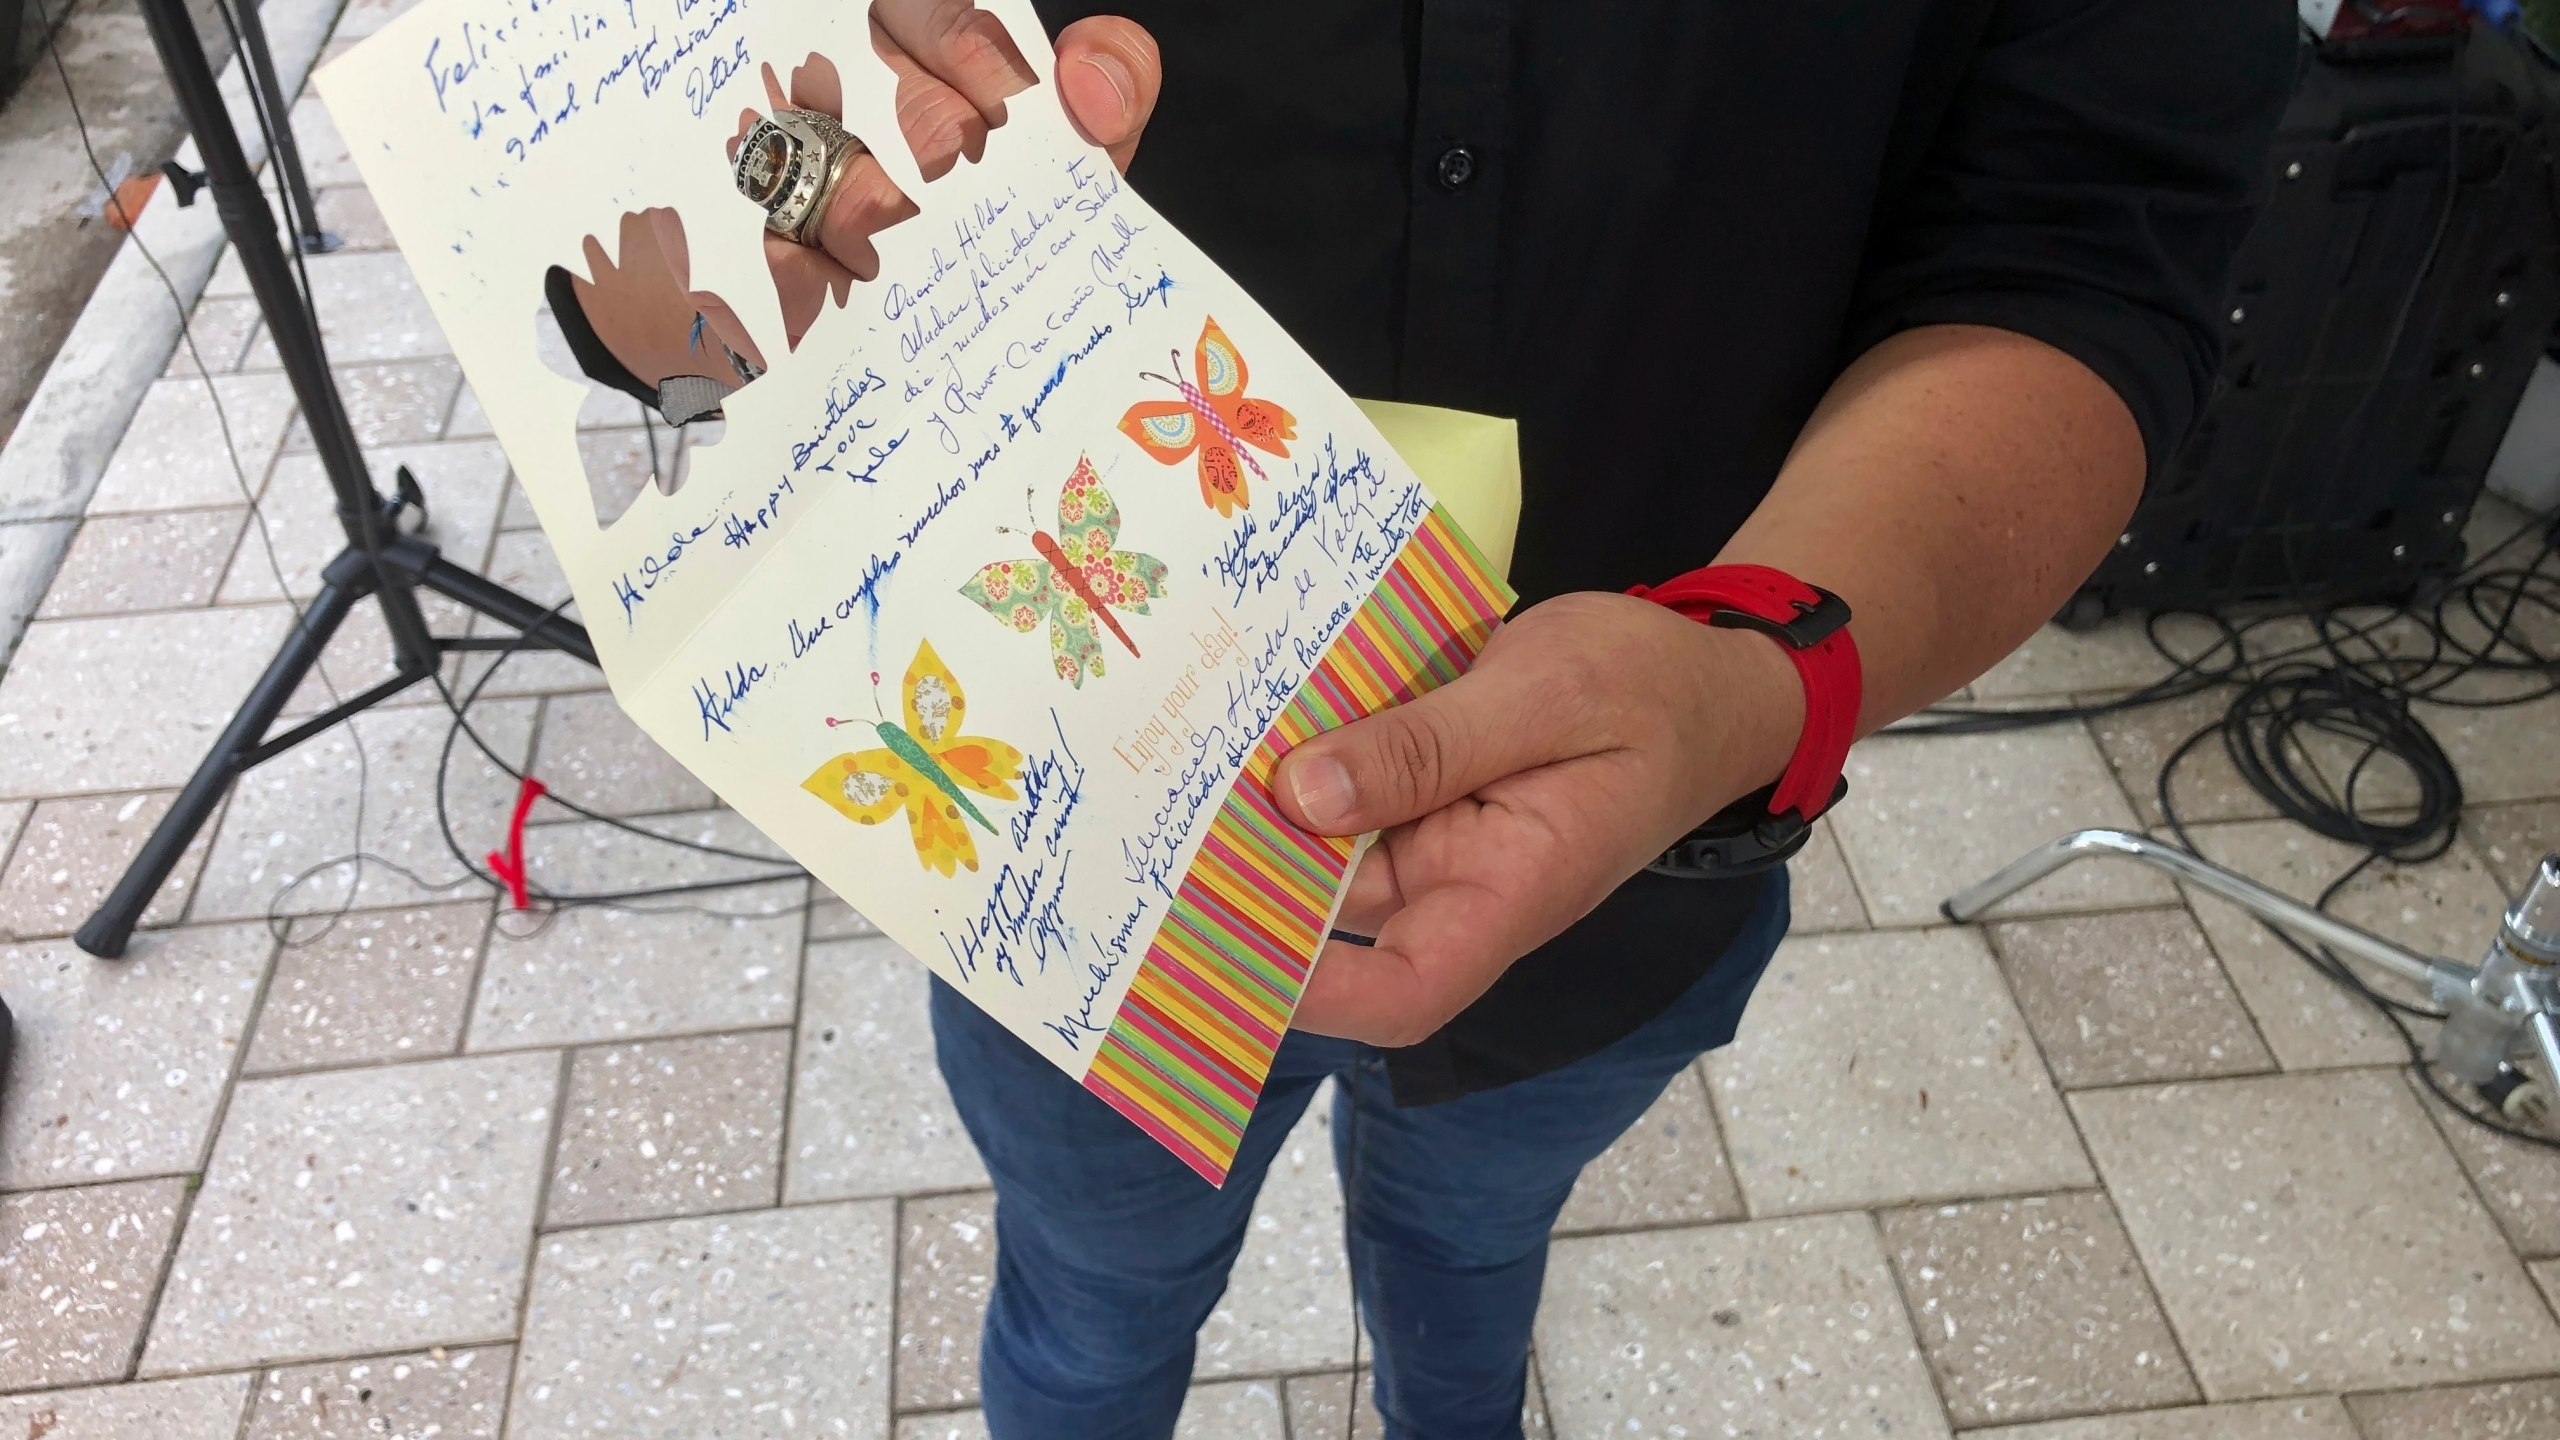 Mike Noriega shows a birthday card, Saturday, June 26, 2021, in Surfside, Fla., relatives sent to his grandmother, Hilda Noriega, two weeks ago for her 92nd birthday. Hilda Noriega lives on the sixth floor of the Miami building that collapsed. (AP Photo/Joshua Goodman)